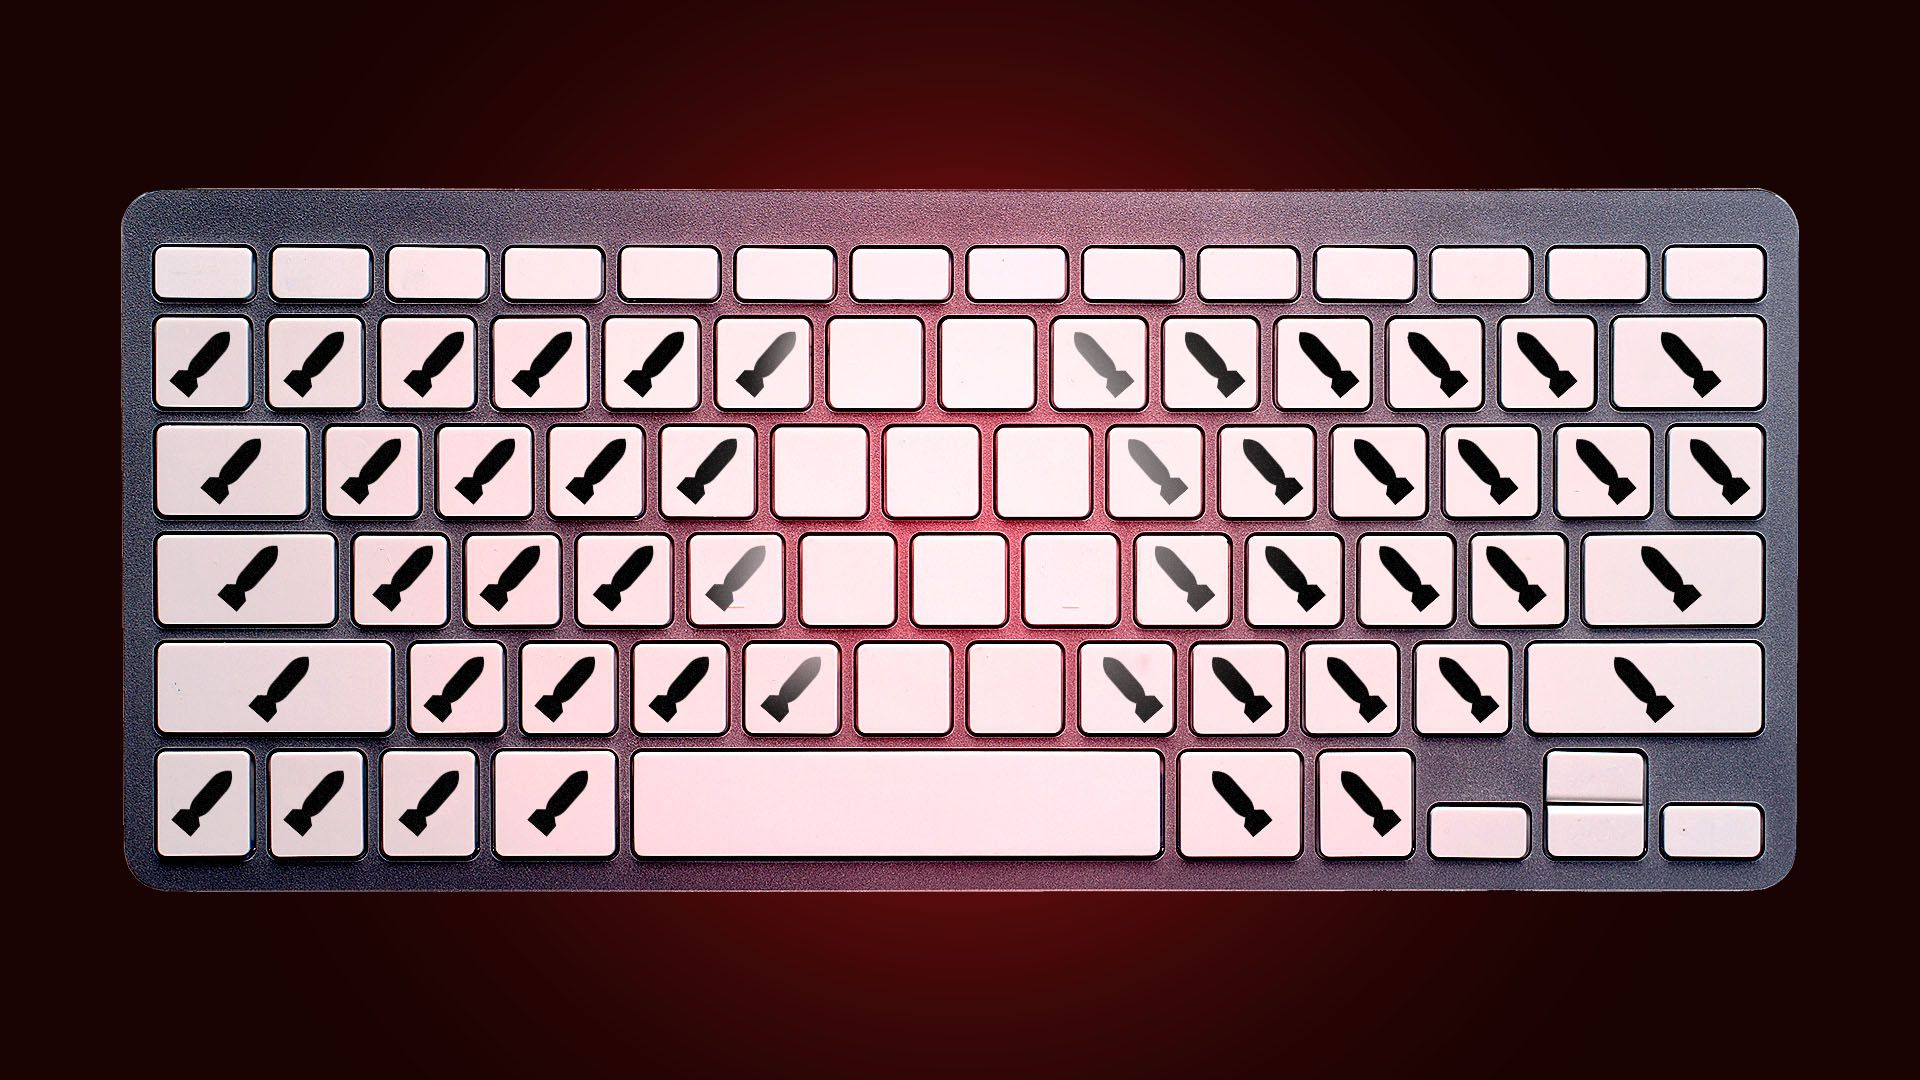 Illustration of a computer keyboard with bomb labels instead of letters